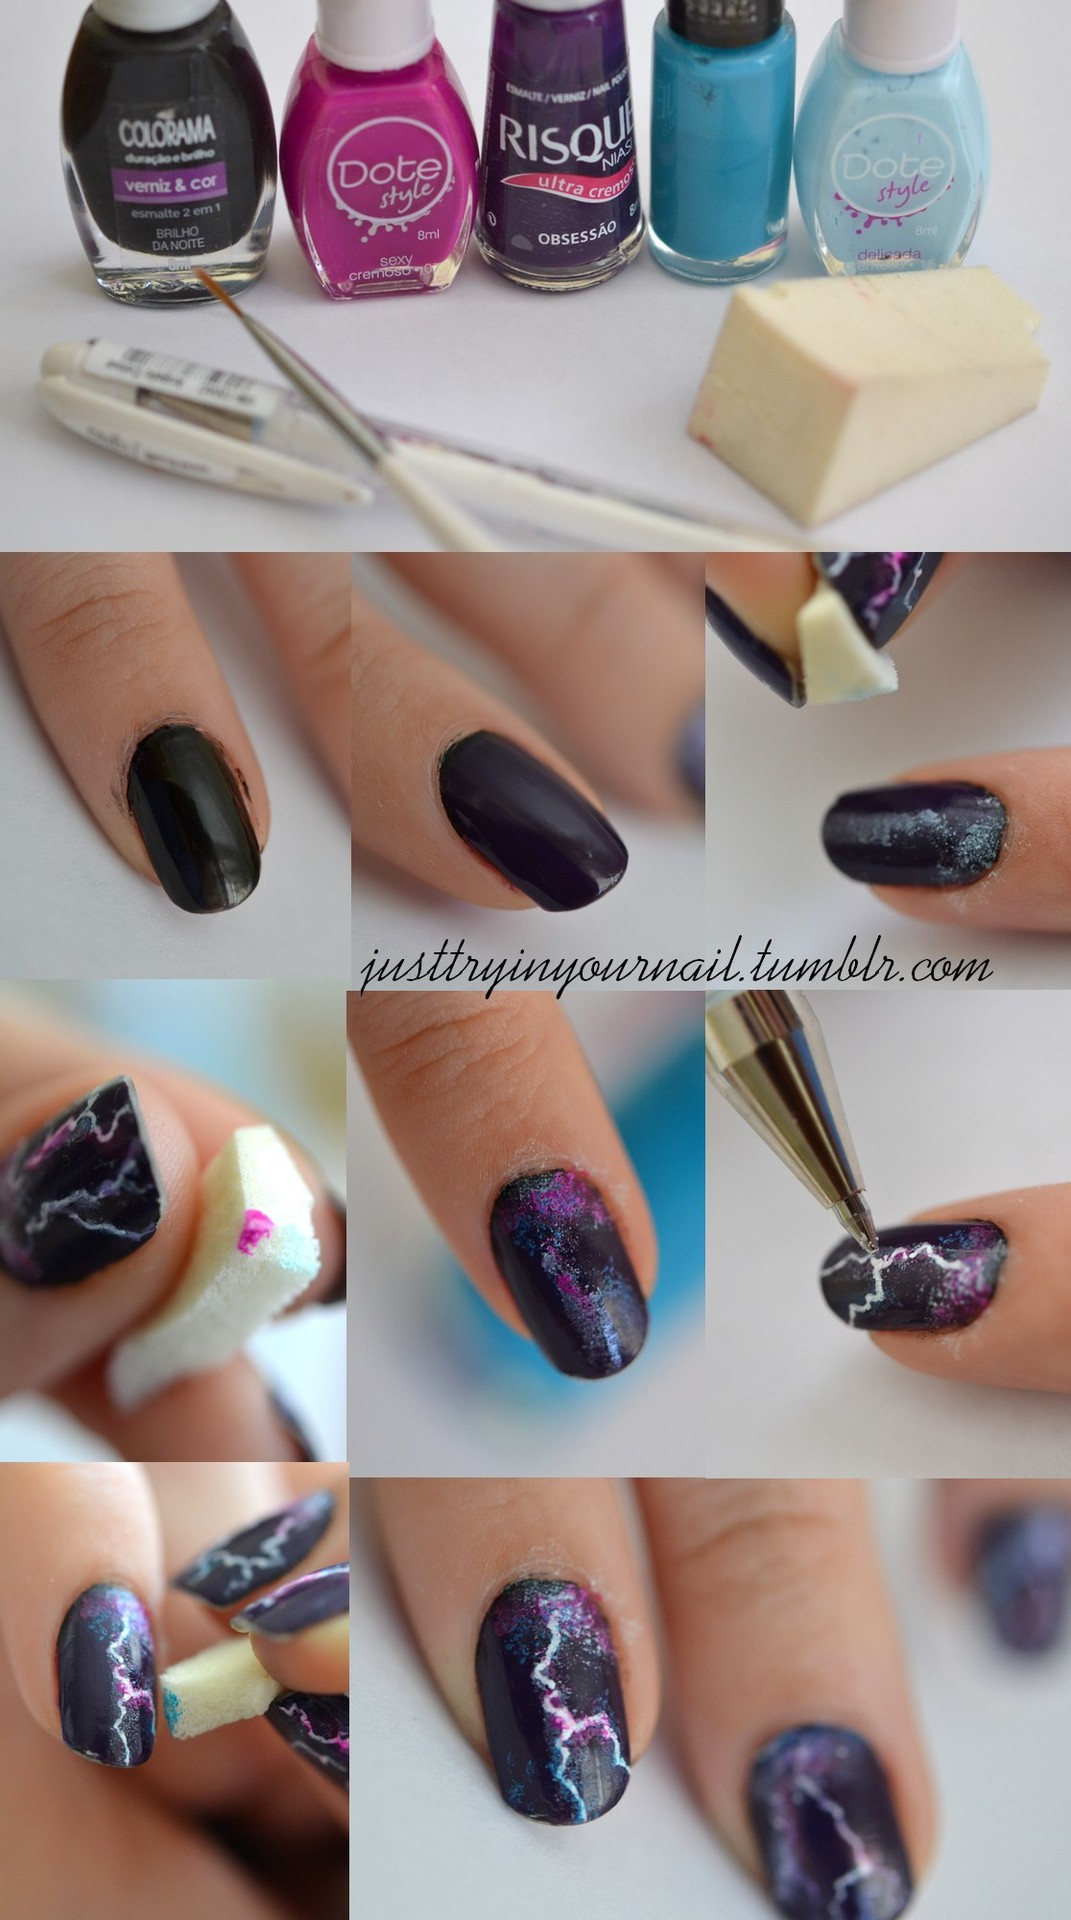 Contemporary Nail Tutorials Gallery - Nail Art Ideas - morihati.com